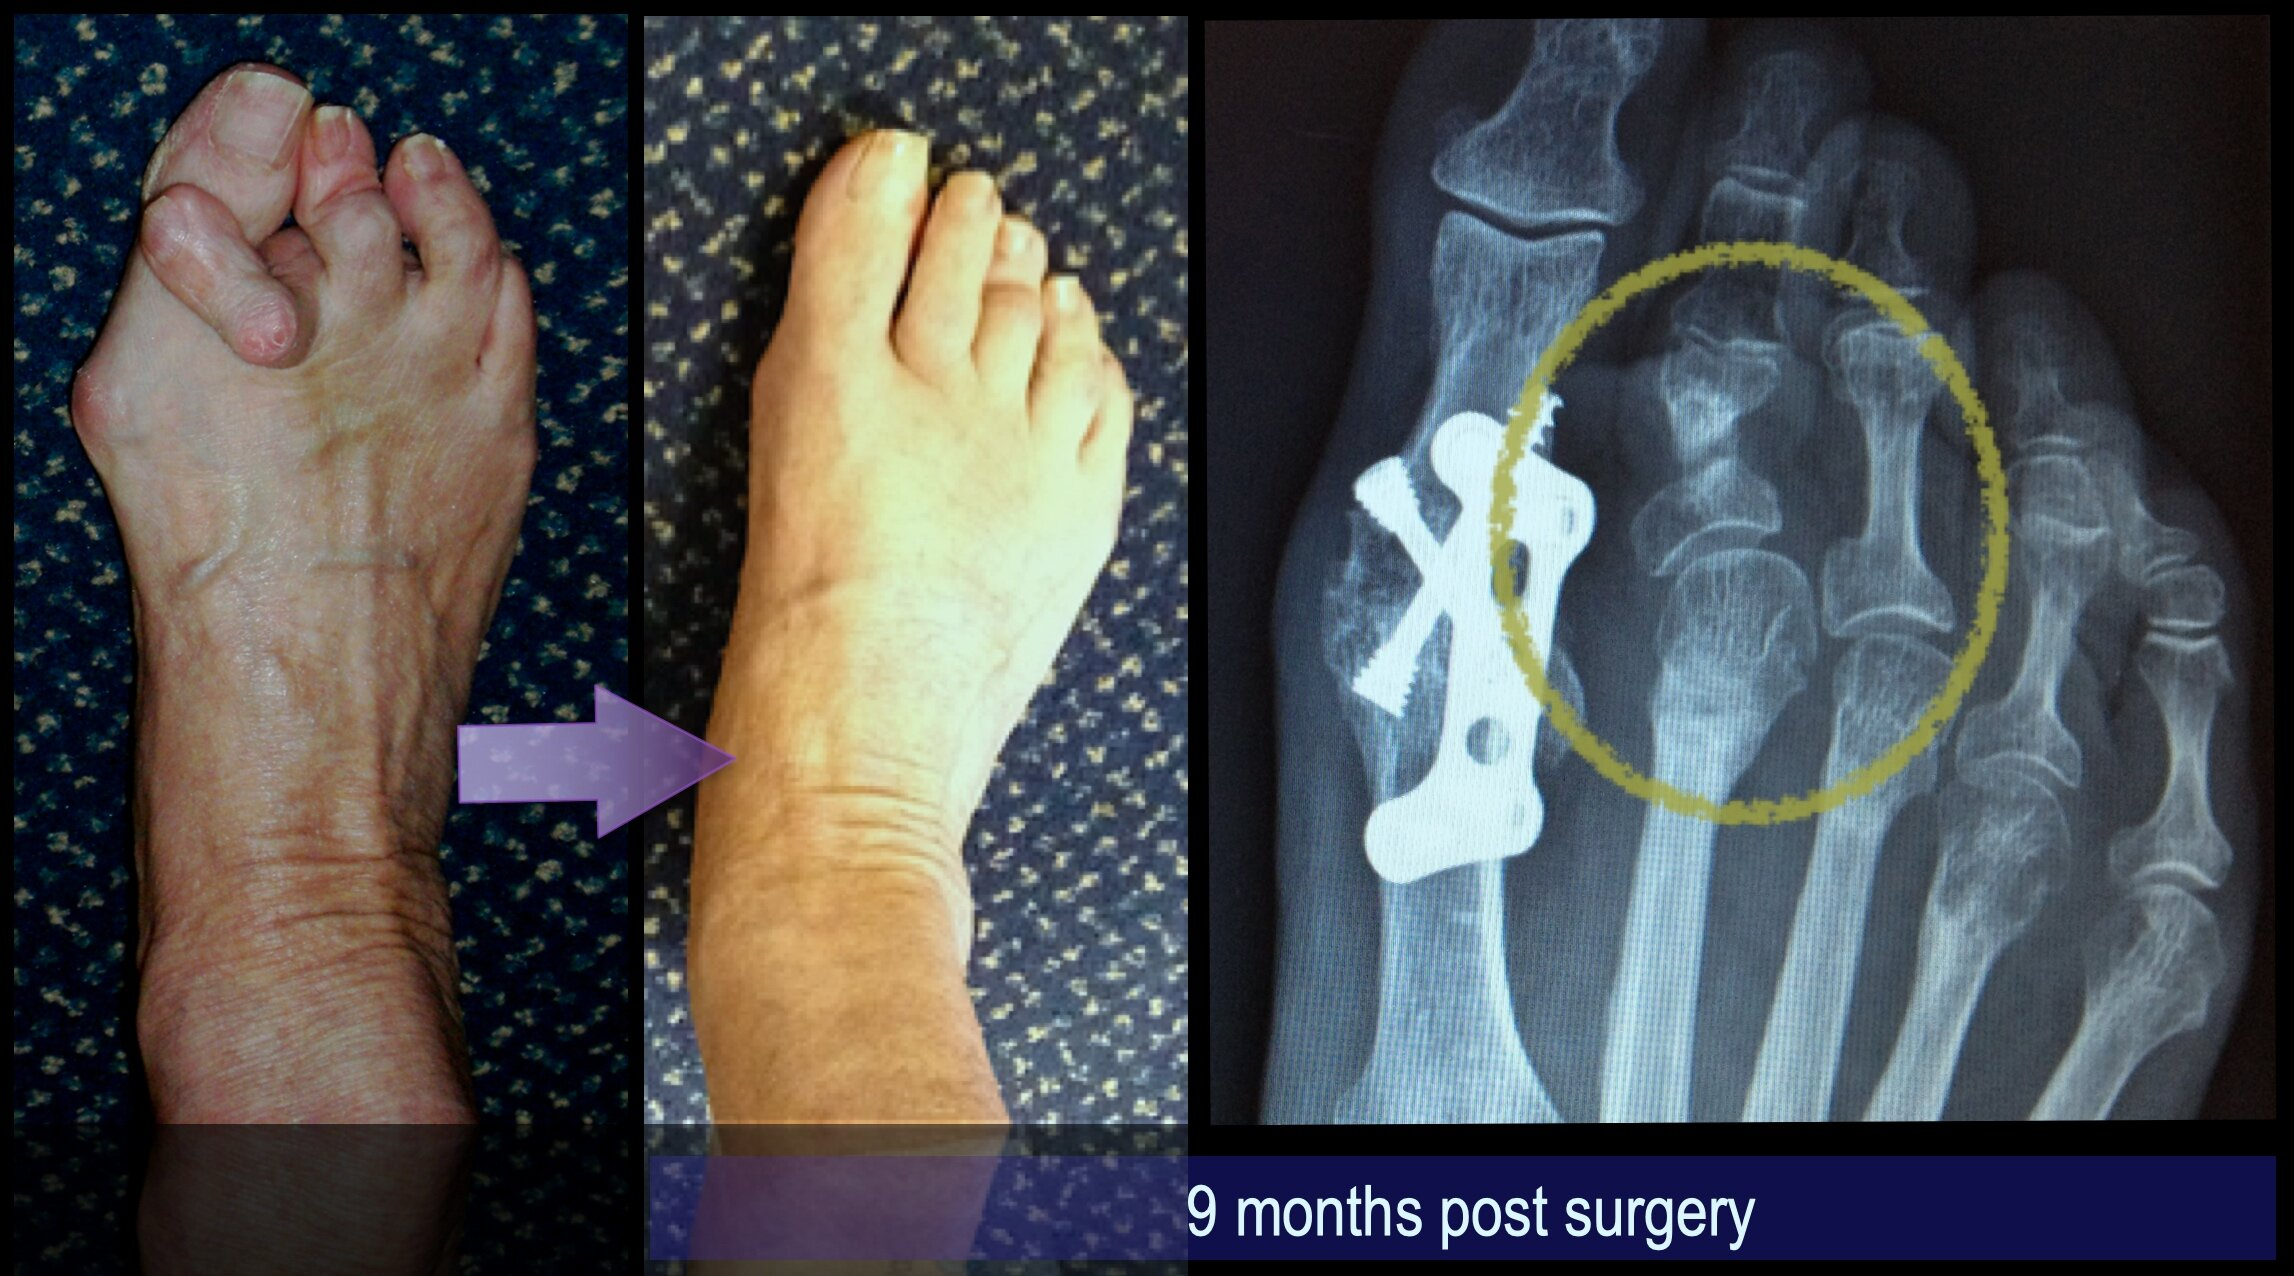 An example of Mr Redfern's surgery. This severe deformity of the 2nd toe was corrected using minimally invasive surgery in combination with surgery to correct an arthritic bunion.